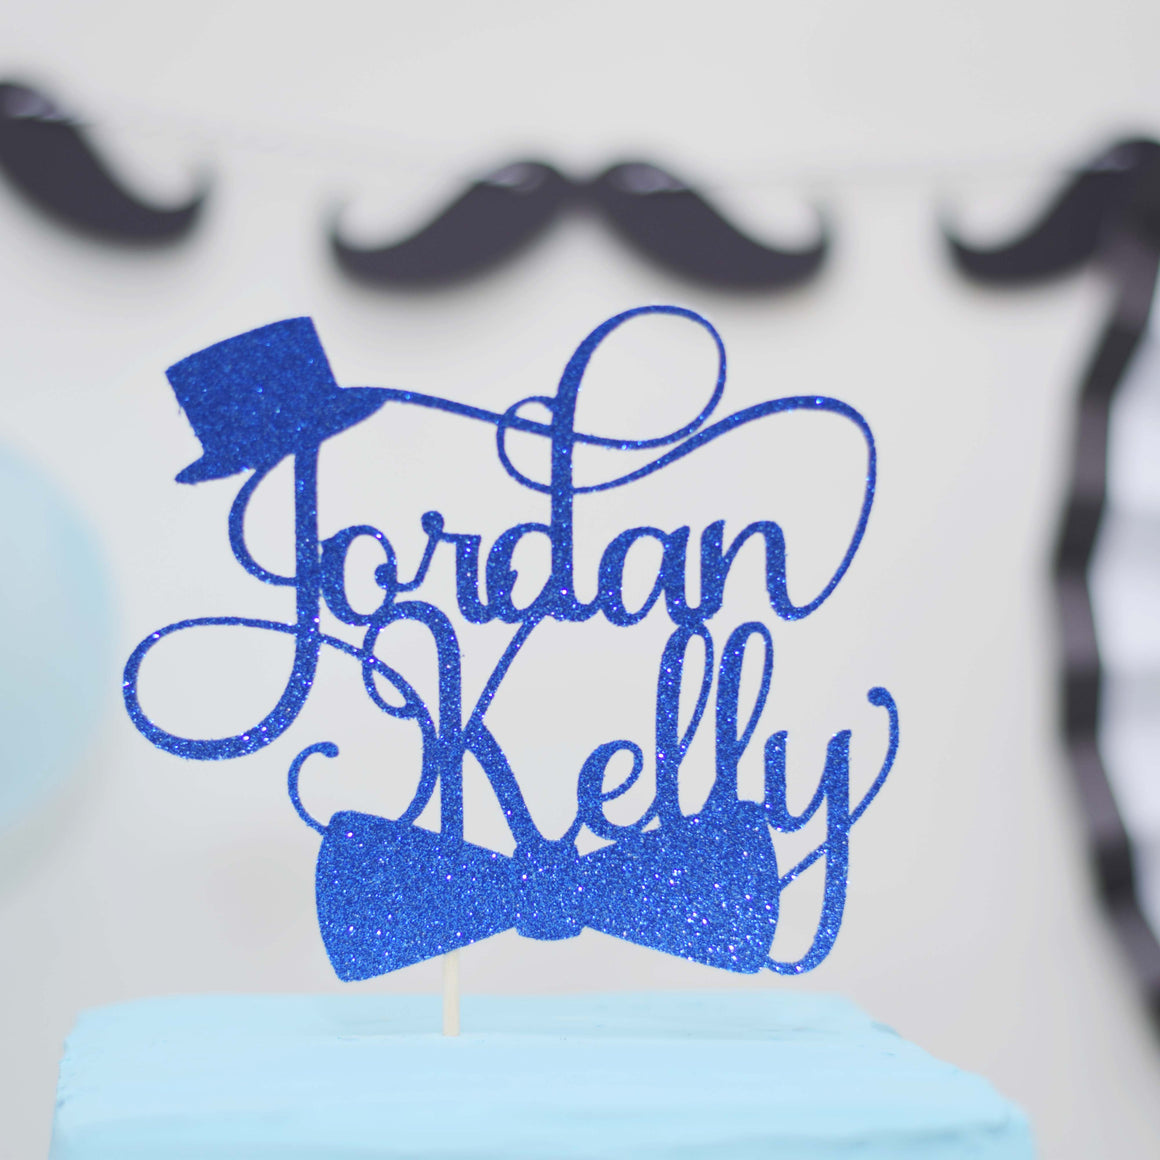 Little man blue cake topper with top hat and bowtie for little man birthday or Mr ONederful party